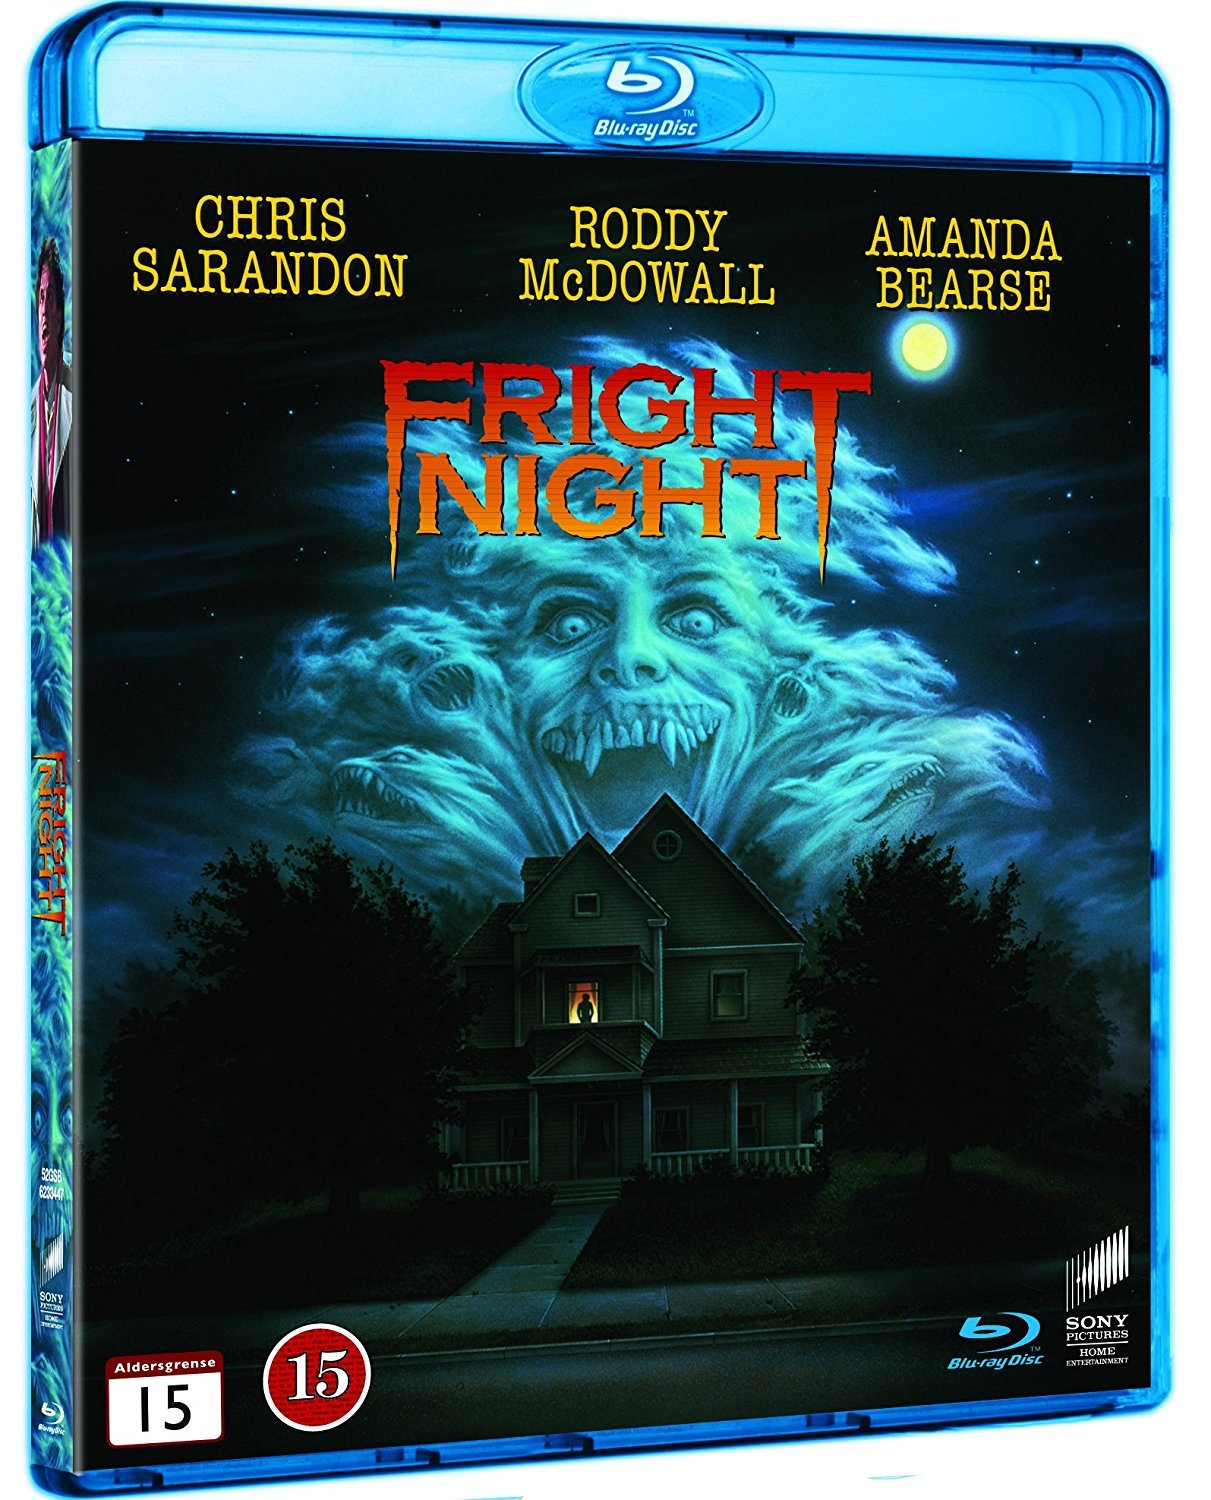 Download Fright Night 1985 BRRip XviD MP3-XVID - SoftArchive